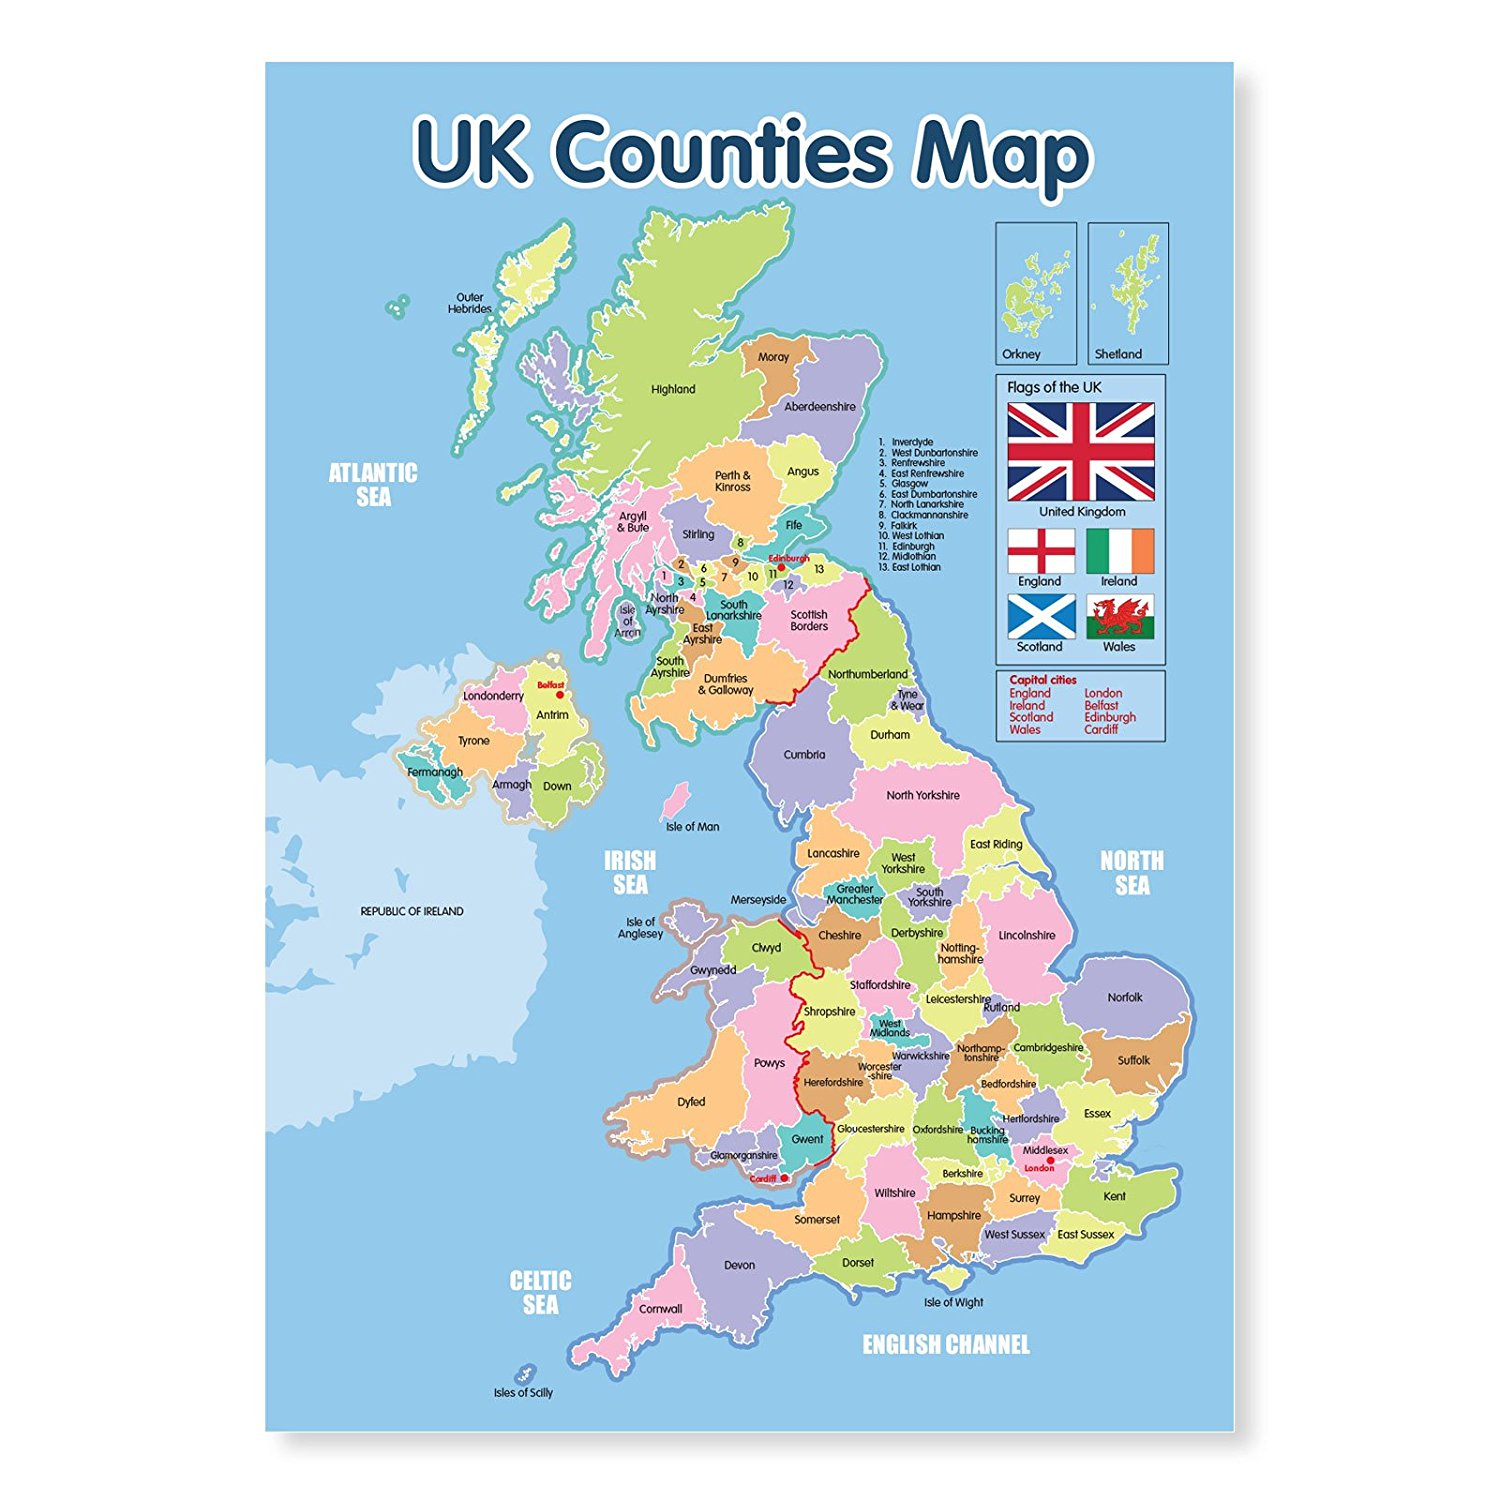 County Map Of England.County Map Of England 2016 Twitterleesclub